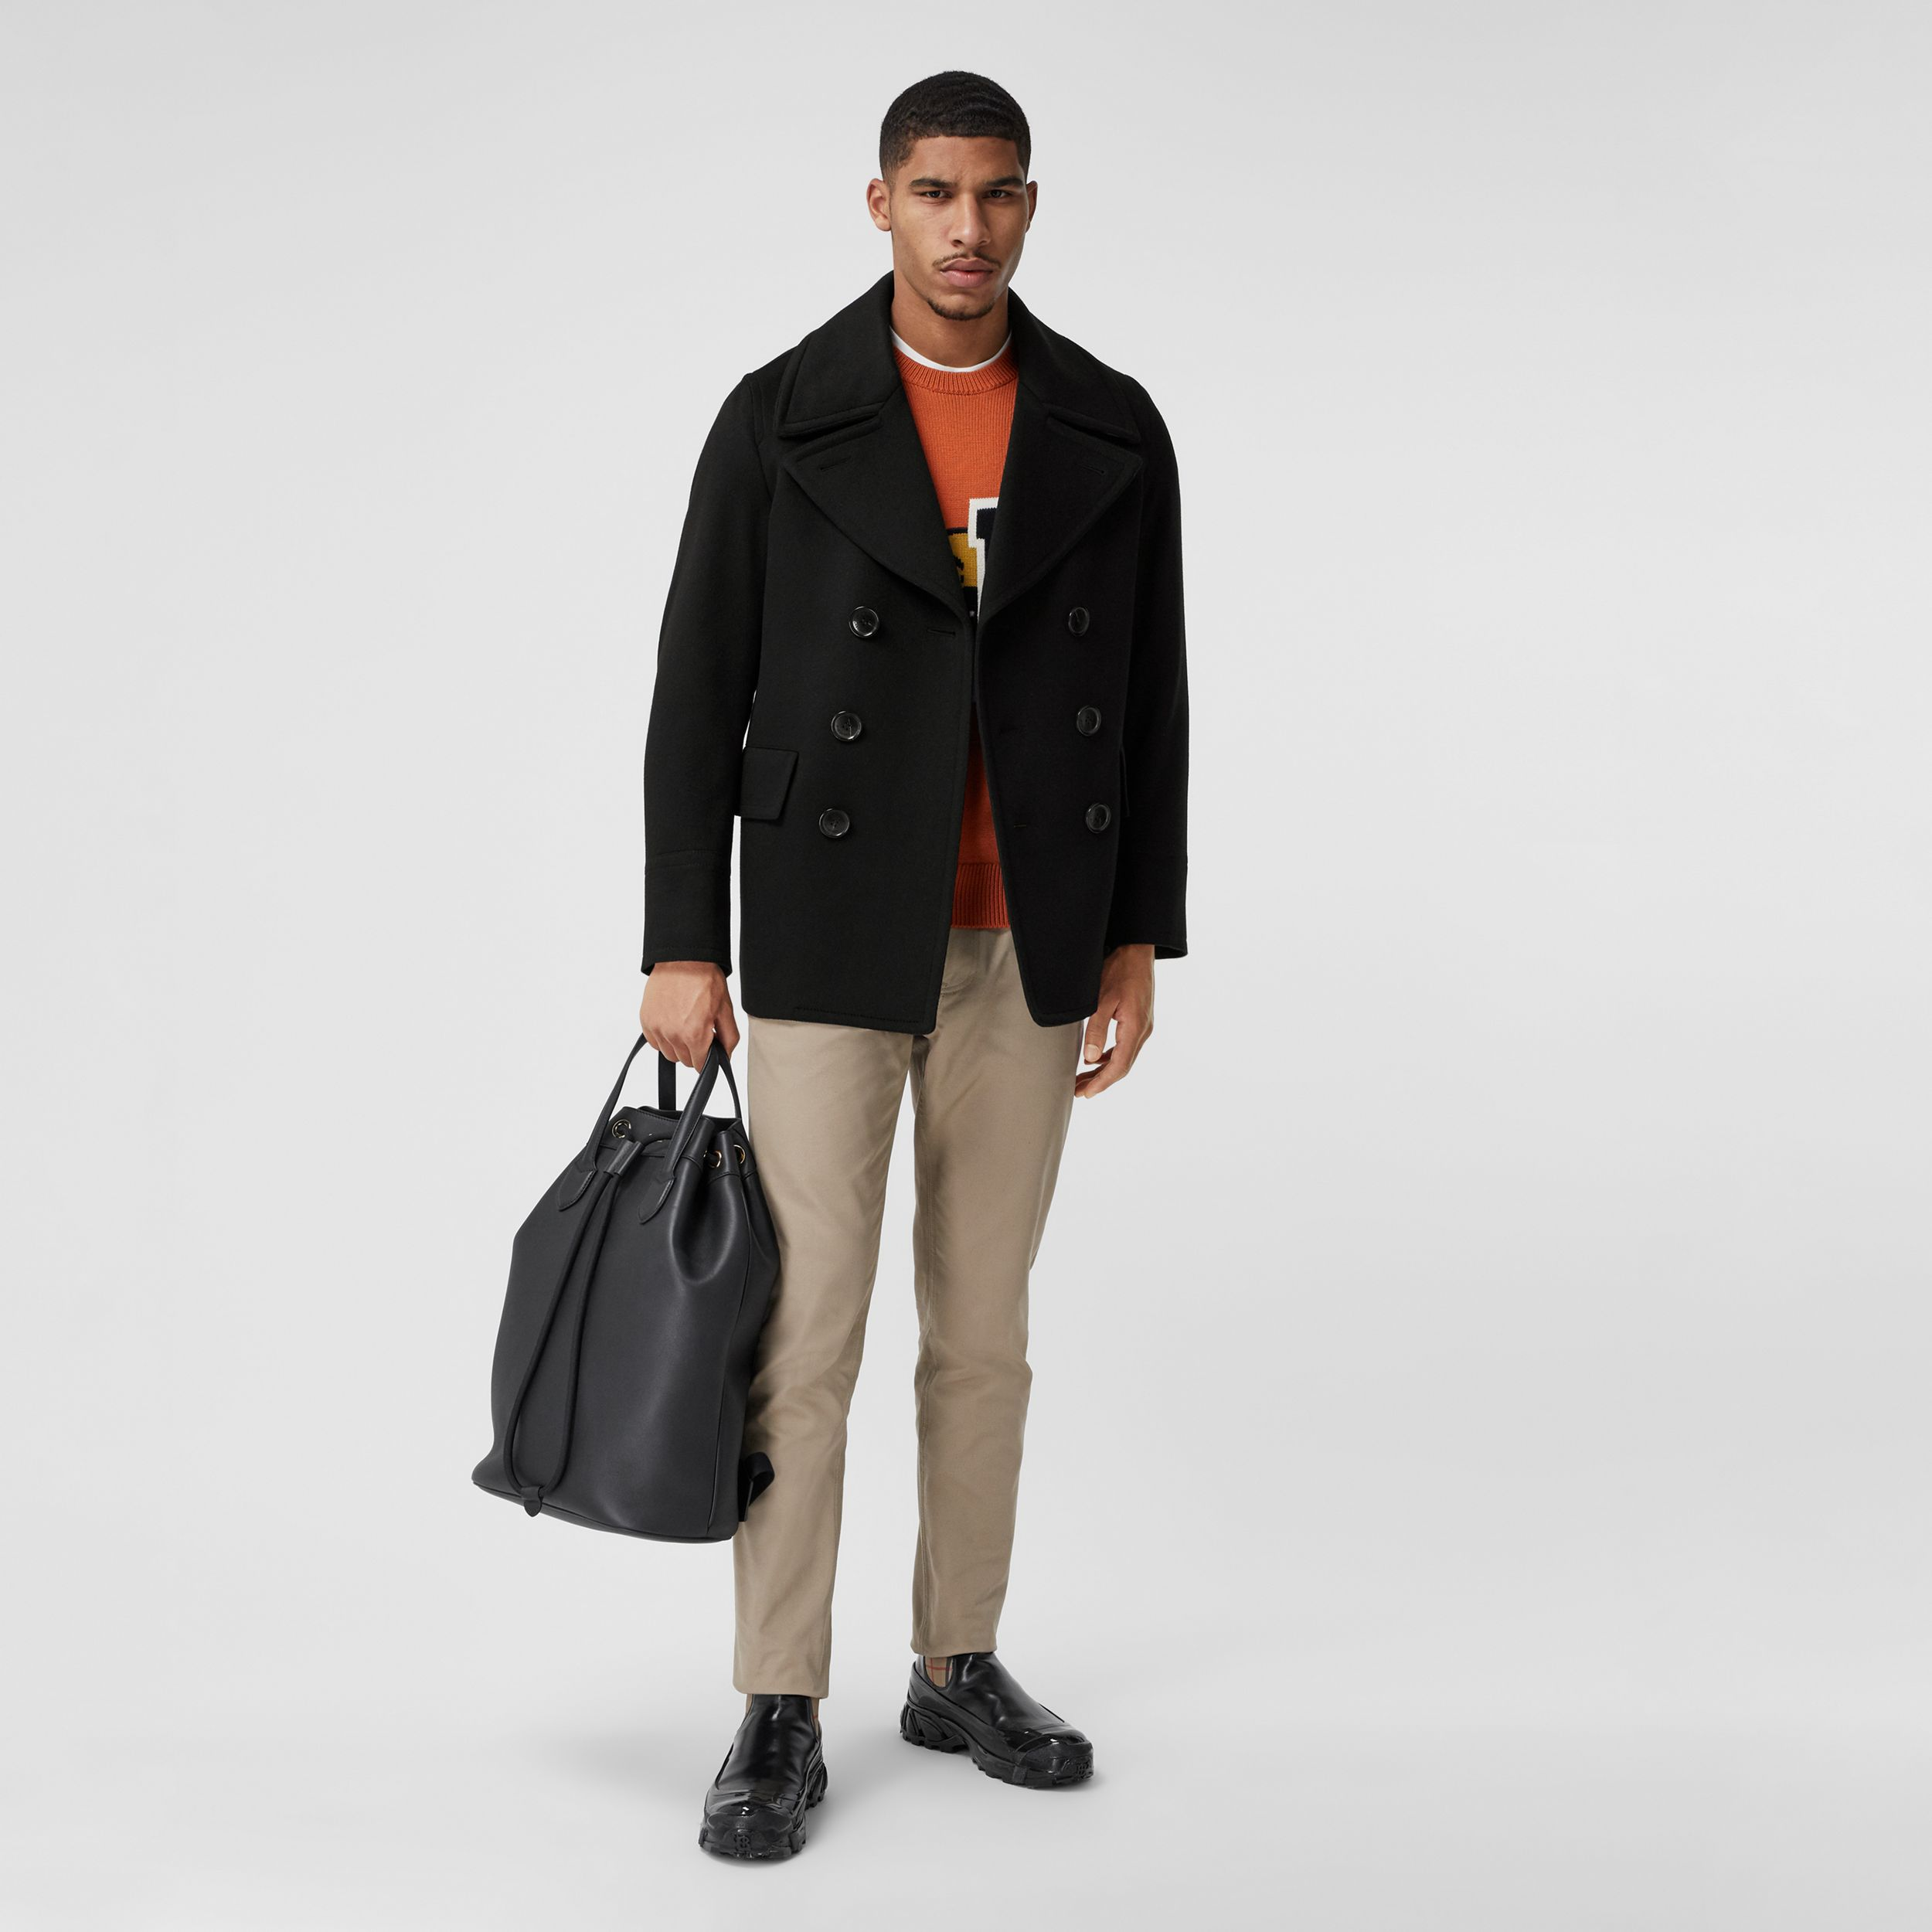 Cashmere Pea Coat in Black - Men | Burberry - 1